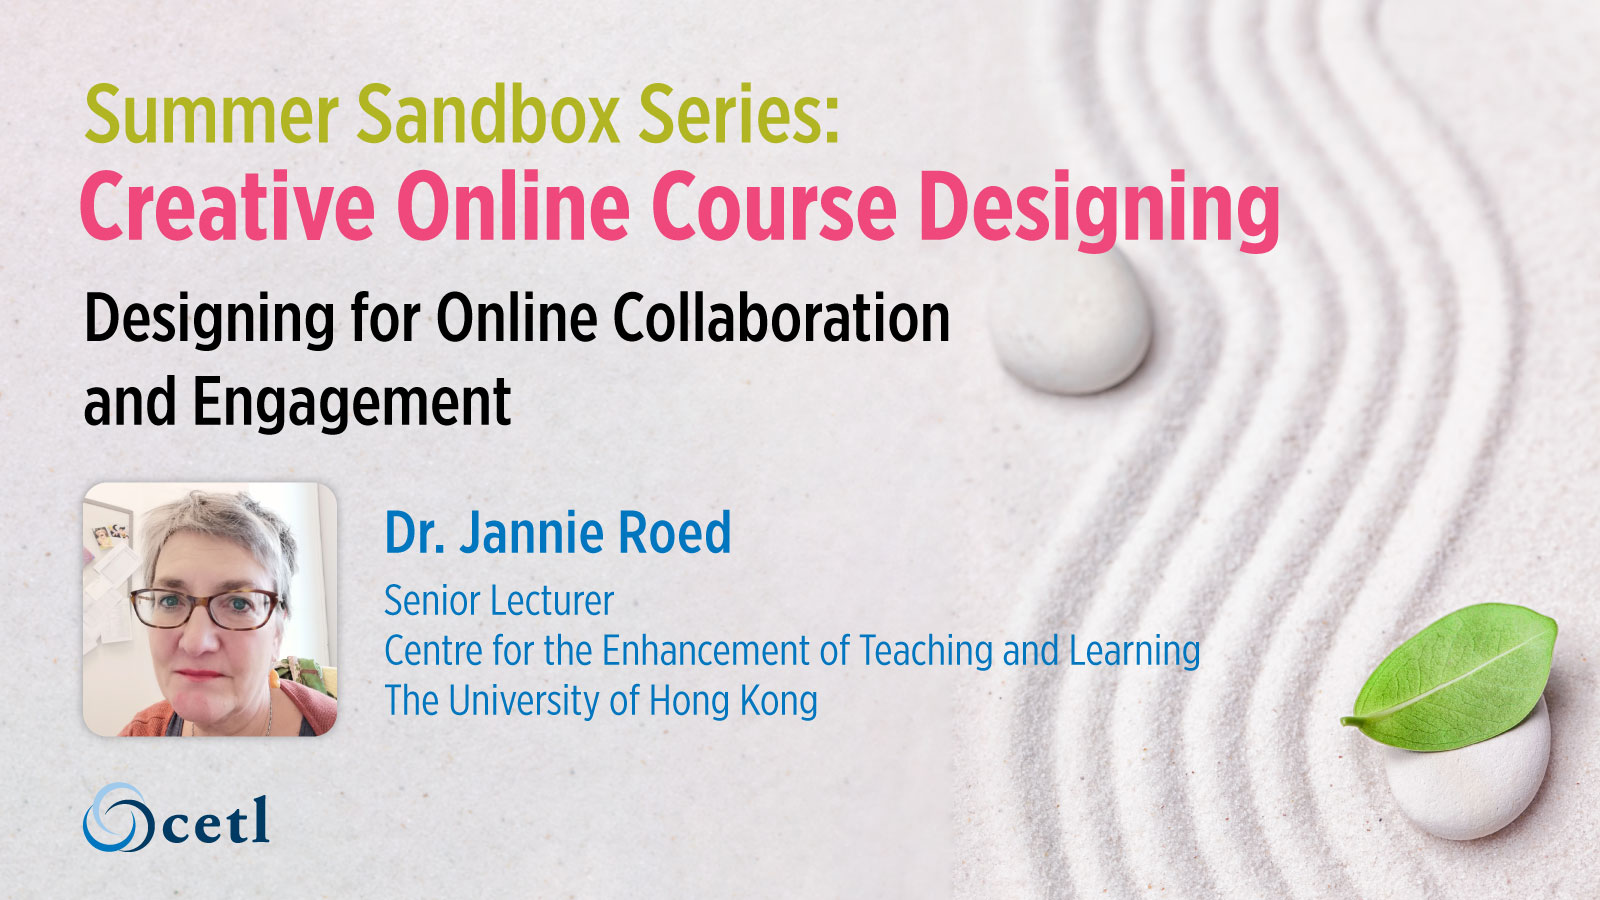 Designing for Online Collaboration and Engagement